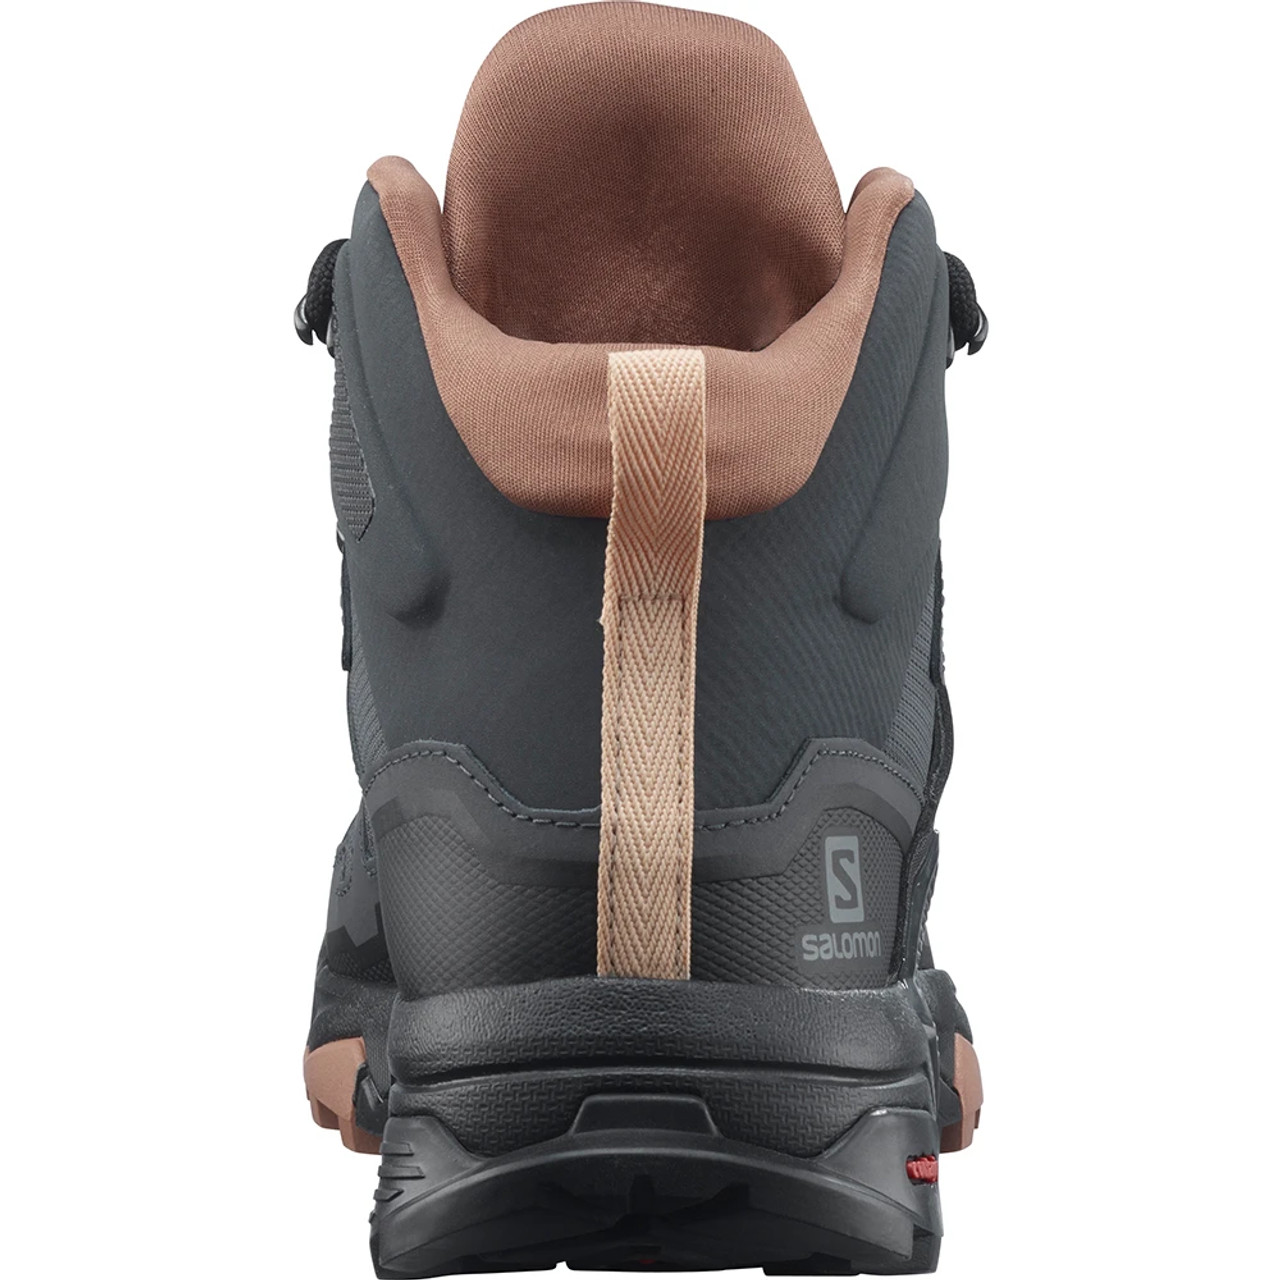 Salomon X Ultra 4 Mid GTX - WMS Online at Mountain Mail Order South Africa - Back